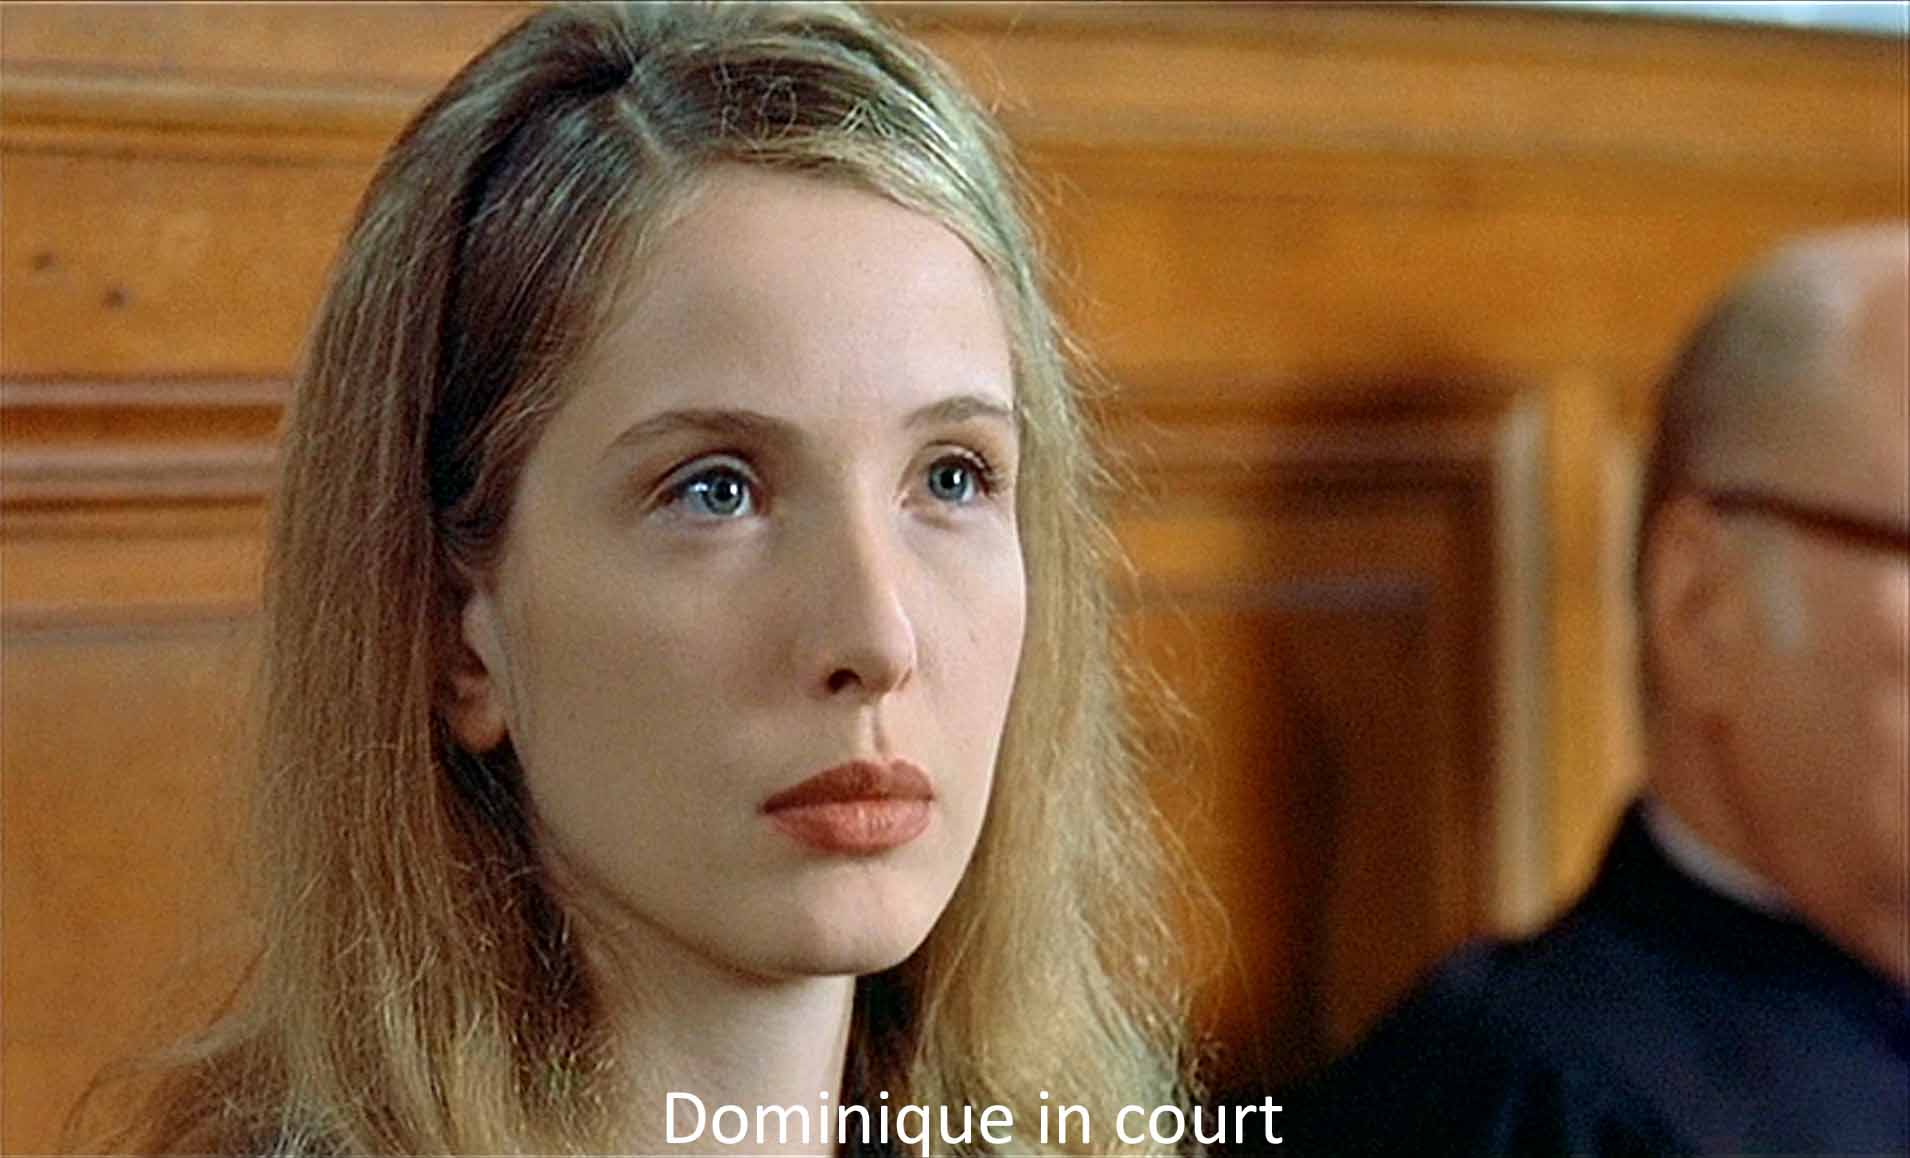 Dominique in court